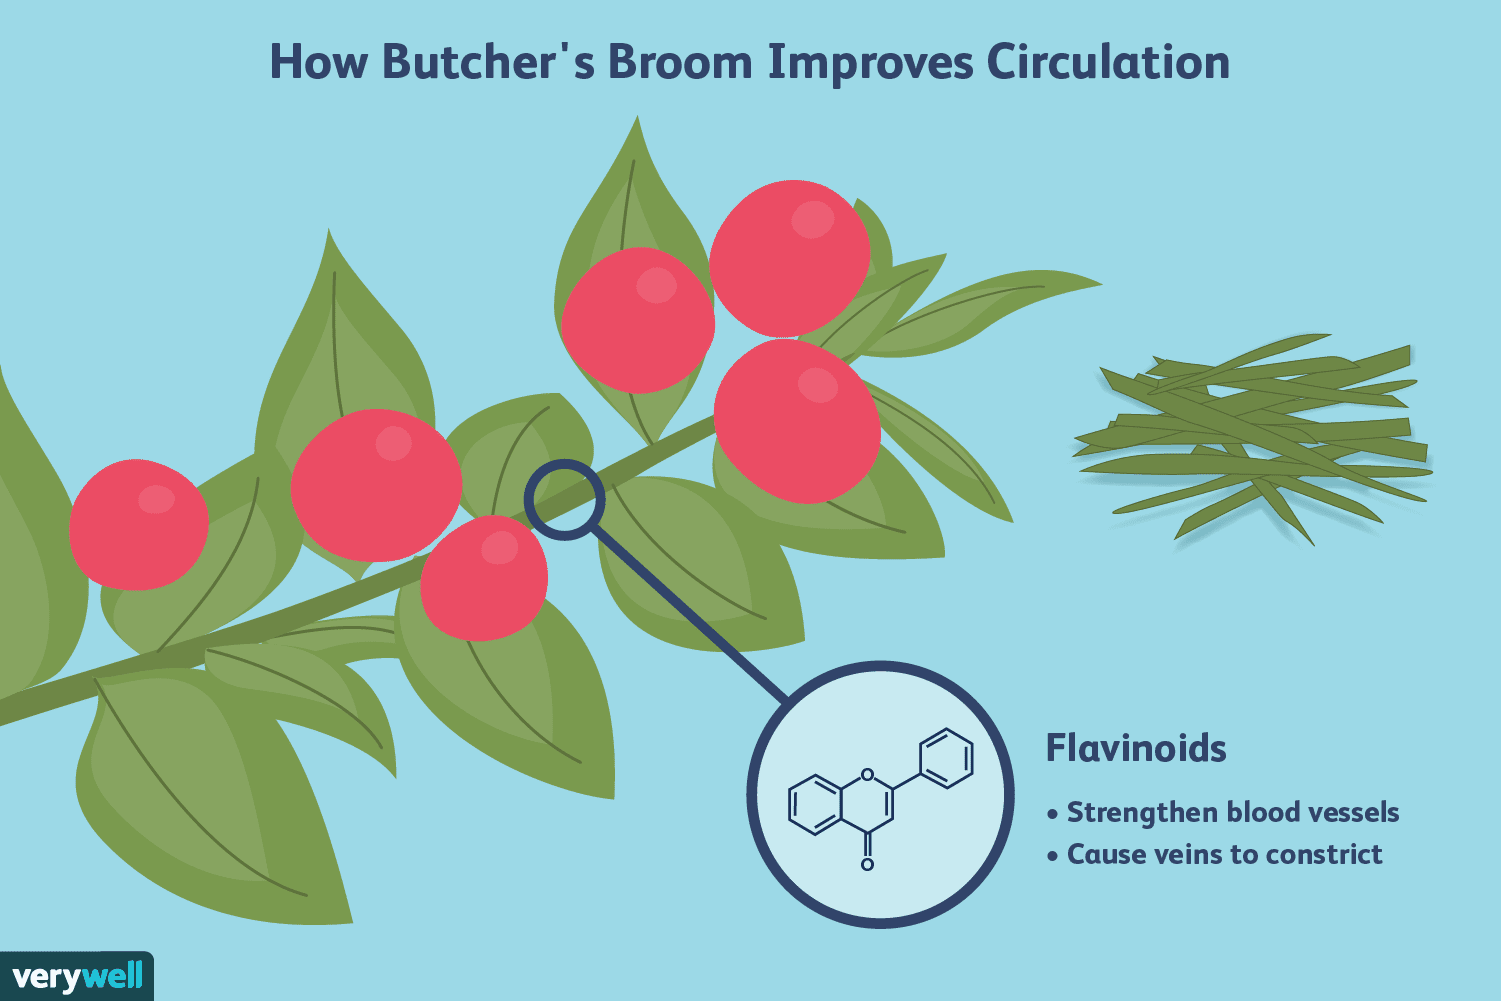 Butcher's Broom Benefits for Chronic Venous Insufficiency